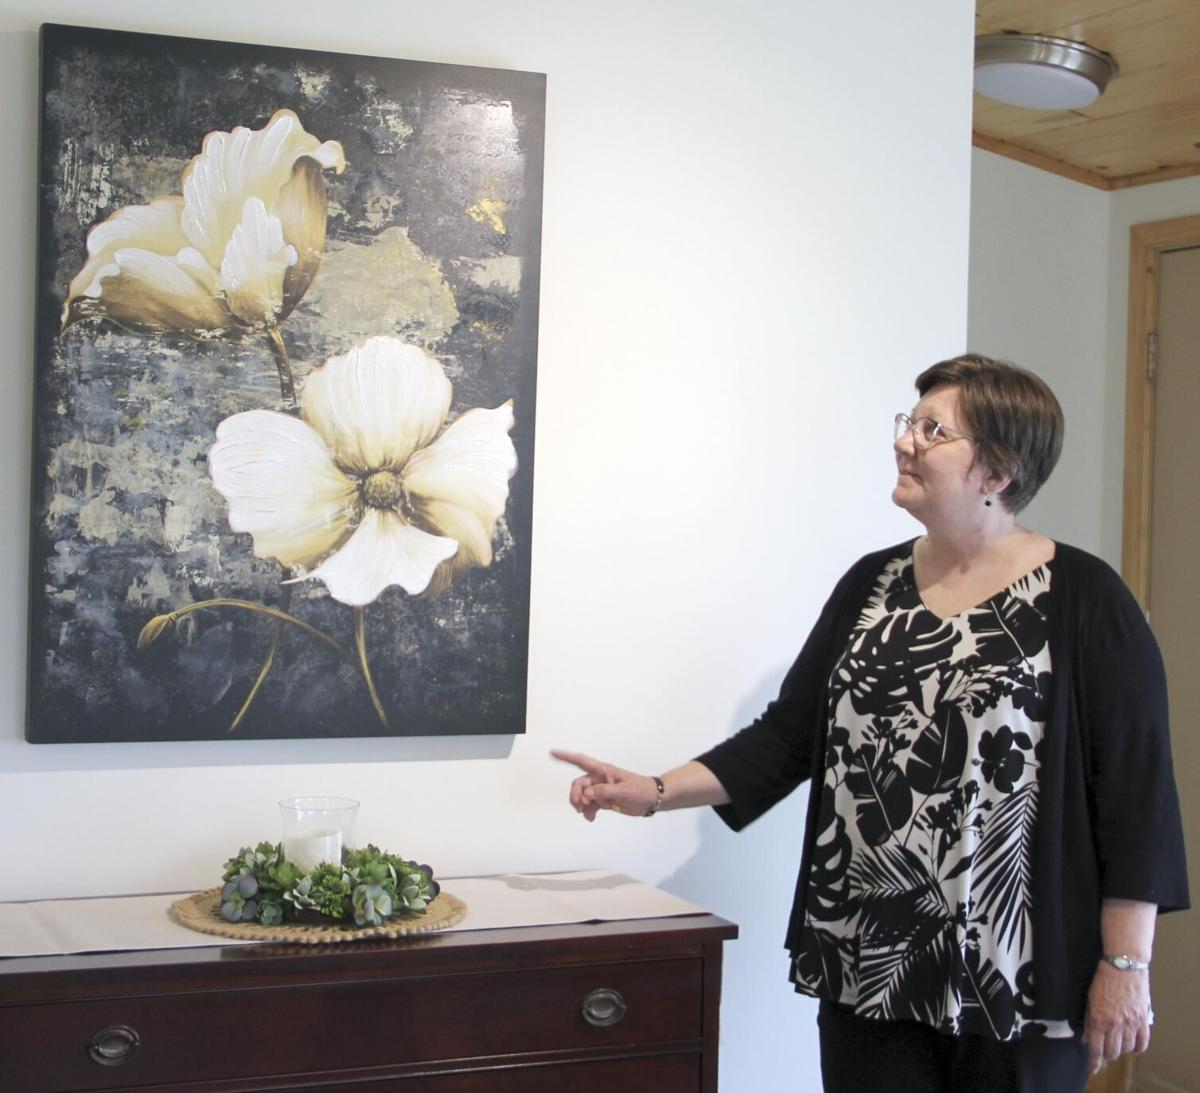 Safe house for sex-traffic victims to open in North Branch